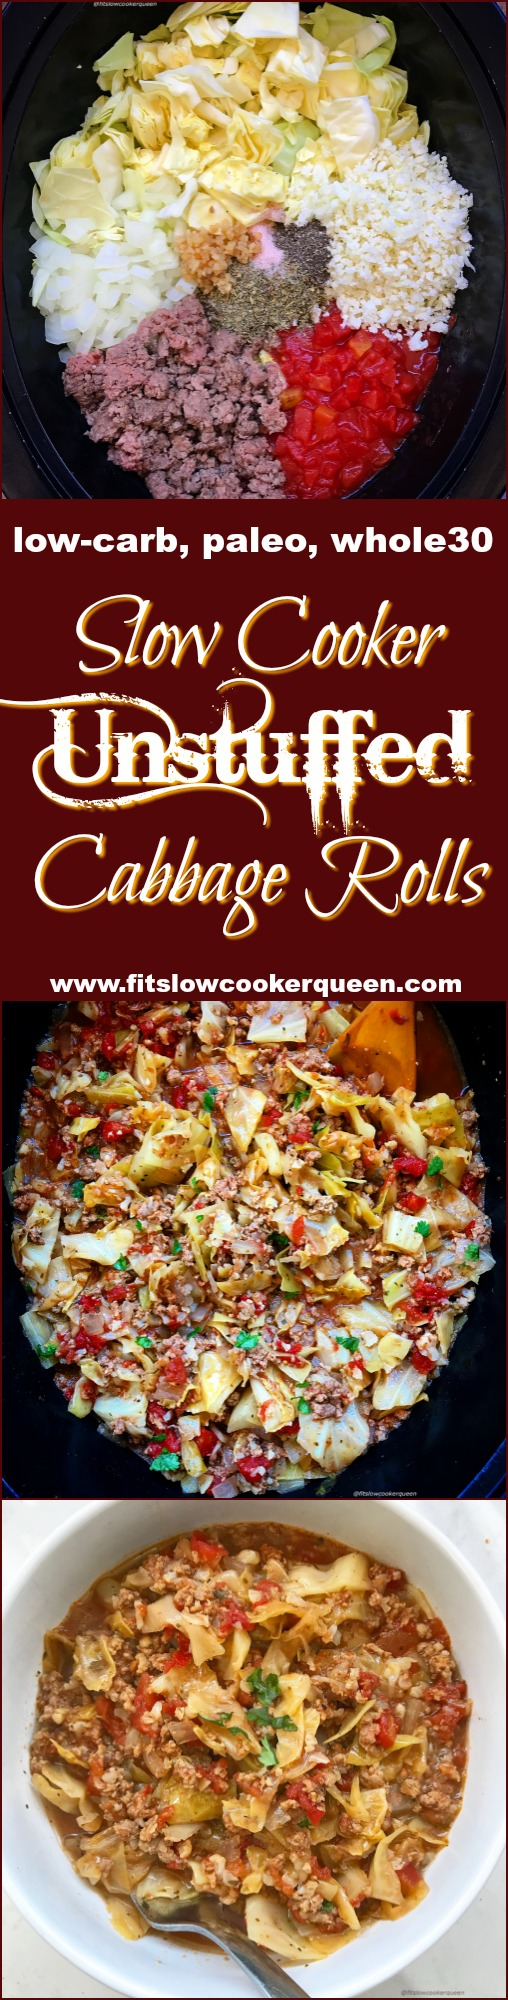 Instead of rolling your cabbage rolls, add the ingredients to the slow cooker and eat them unstuffed! This slow cooker dish has all the elements of a traditional cabbage roll, but without the fuss. It's also low-carb, paleo and whole30.